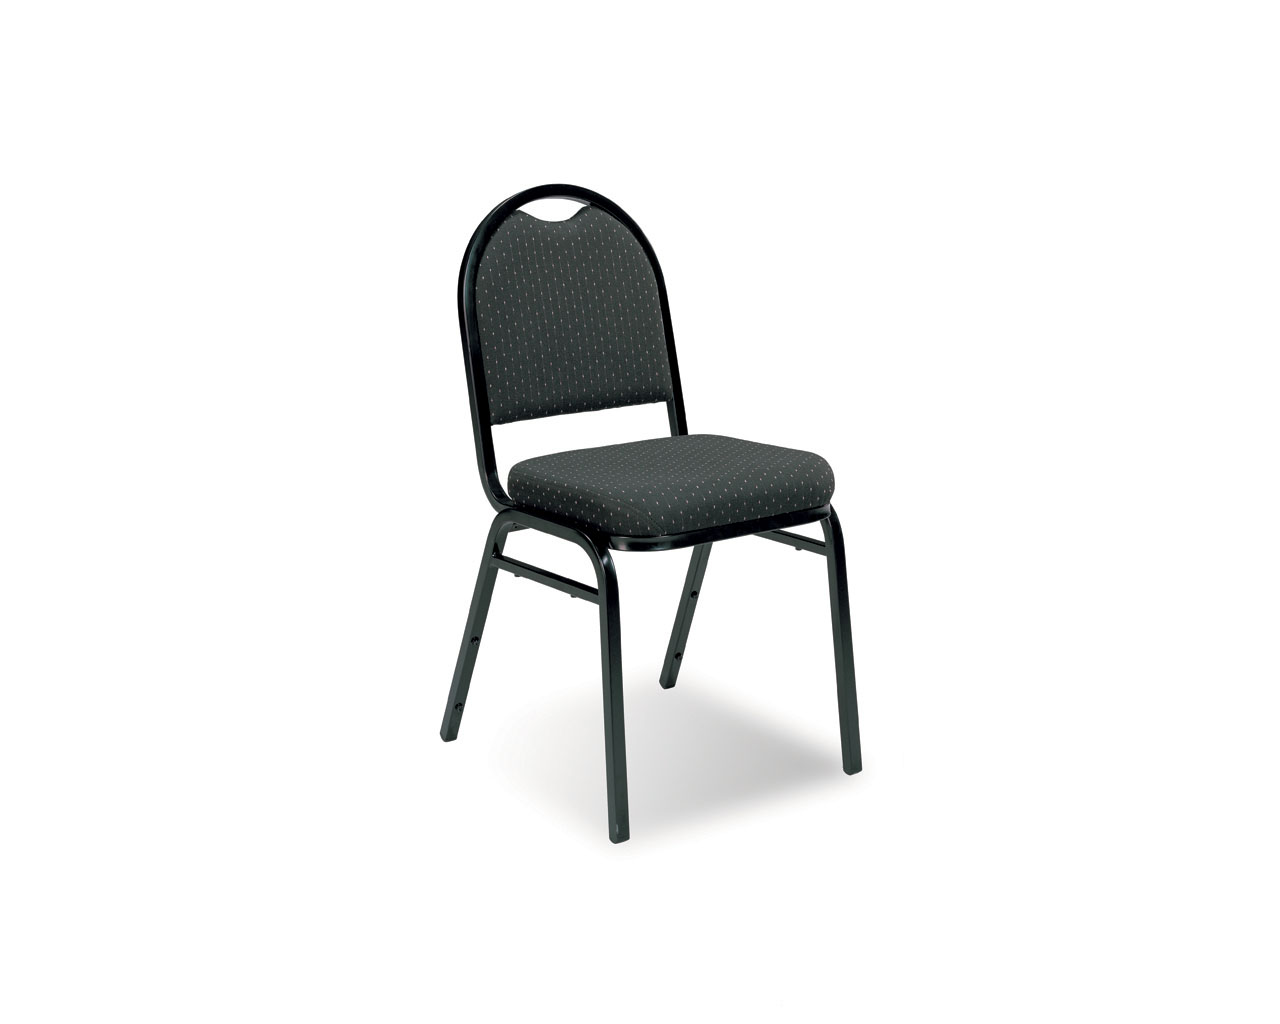 stacking chair a chairs house transit product your home central make bendigo